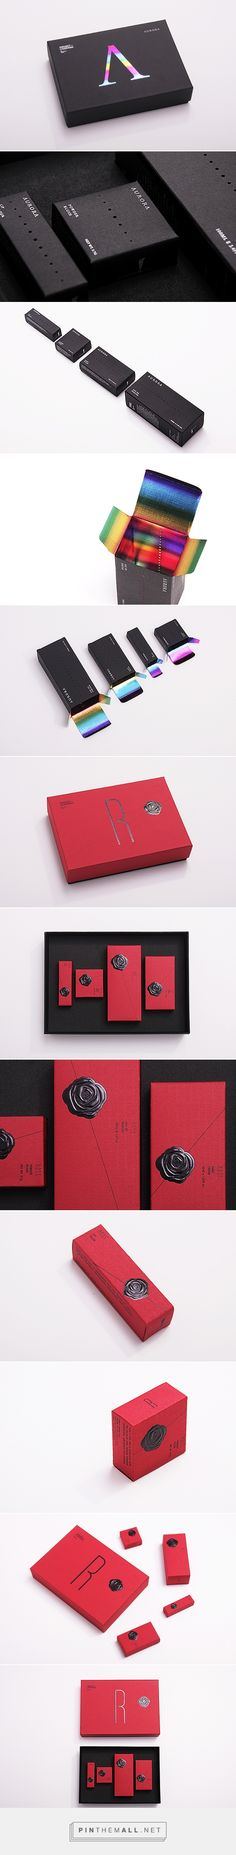 Project Charisma - Aurora & Ross packaging